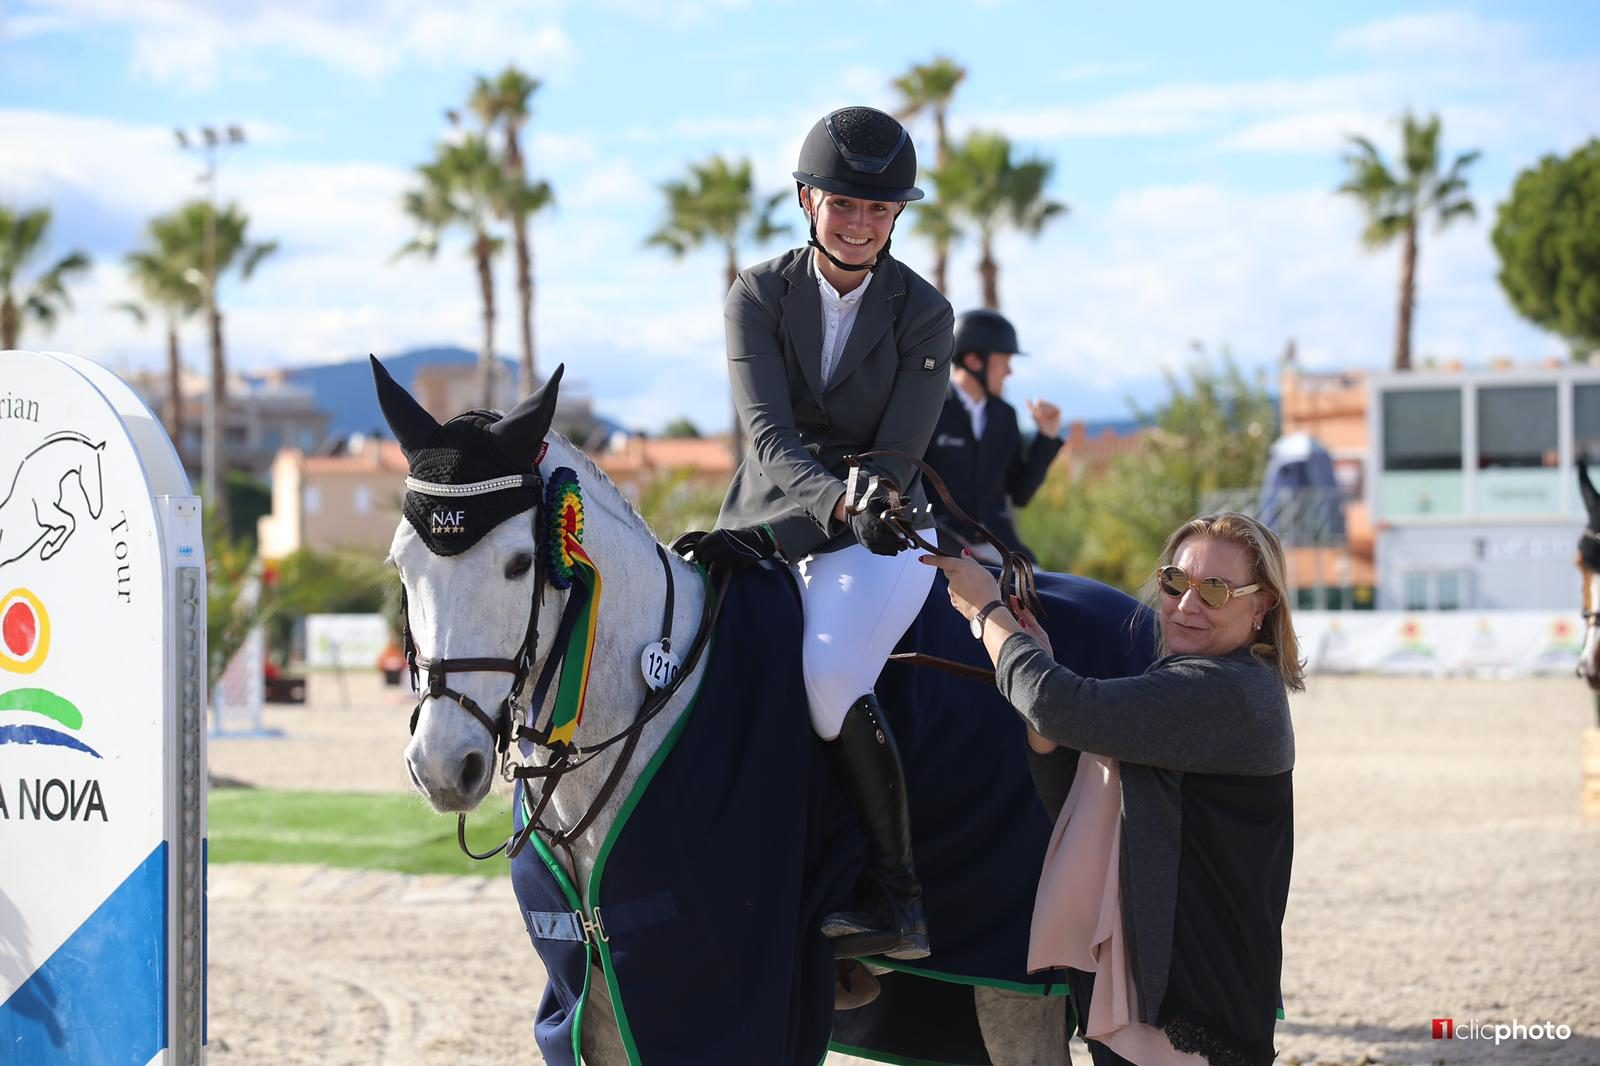 Ruby Fryer winning at Oliva Nova MET